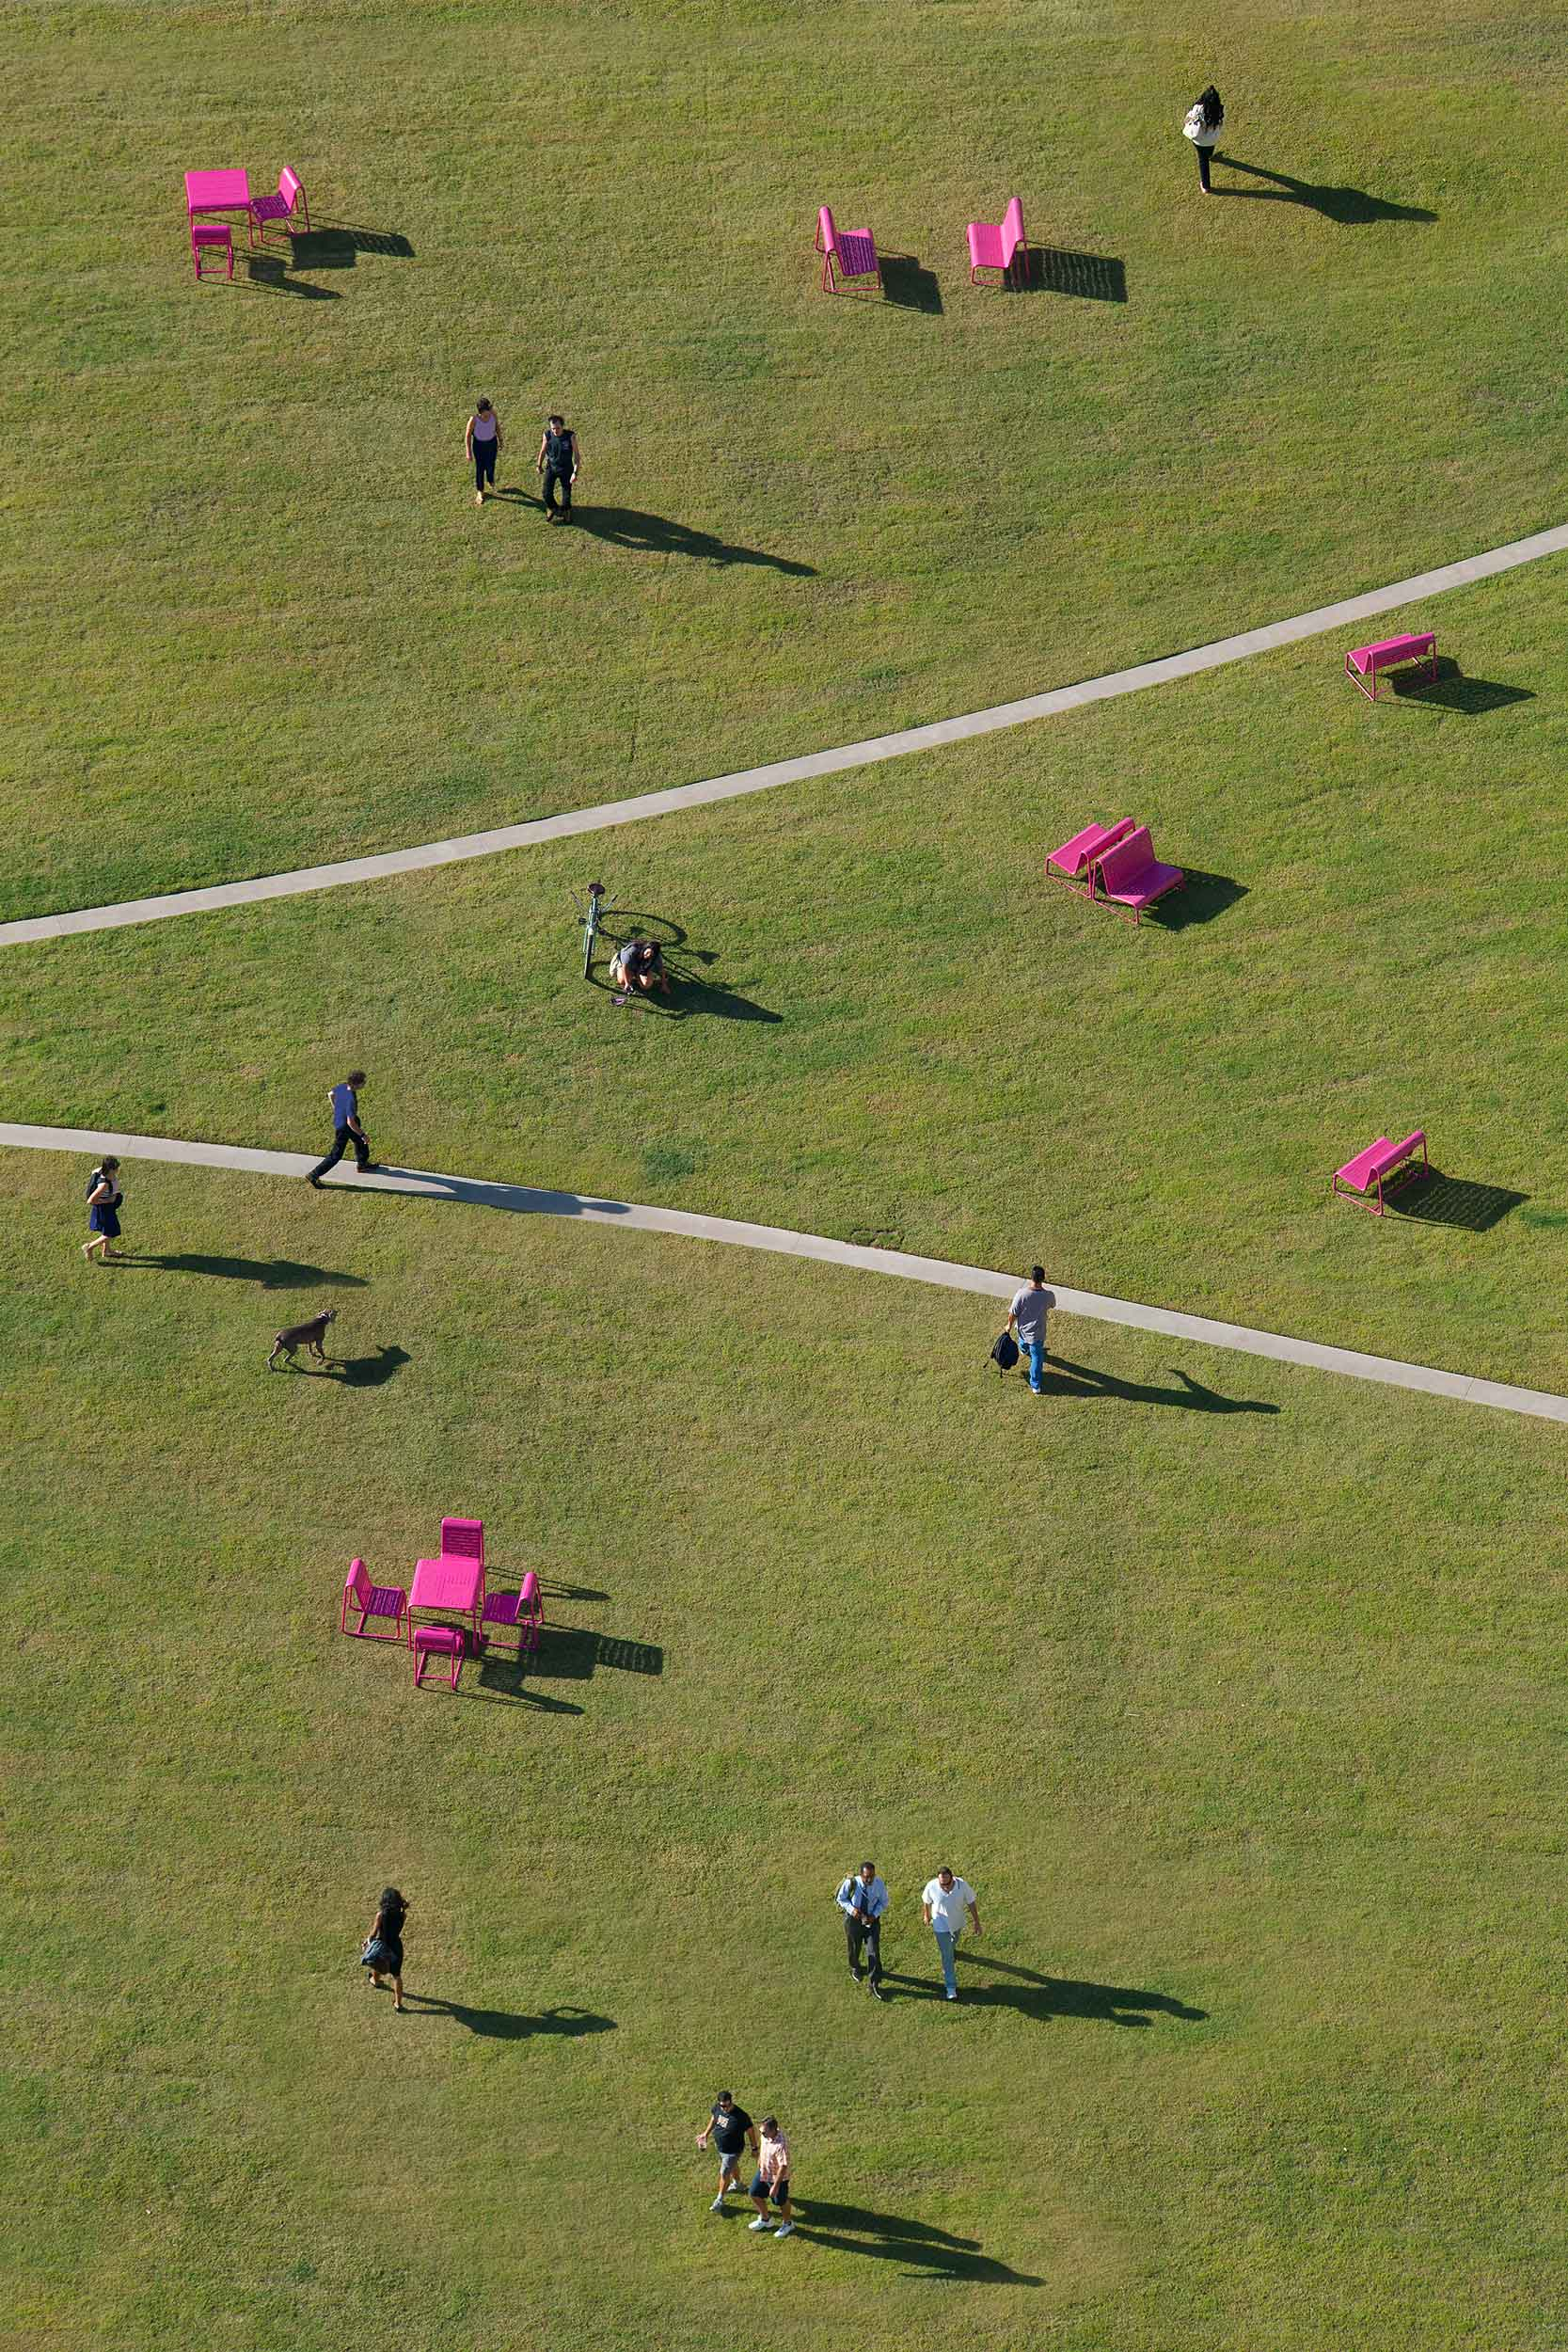 aerial view of grassy lawn with people and pink seating scattered throughout, with two curved paths running through the center